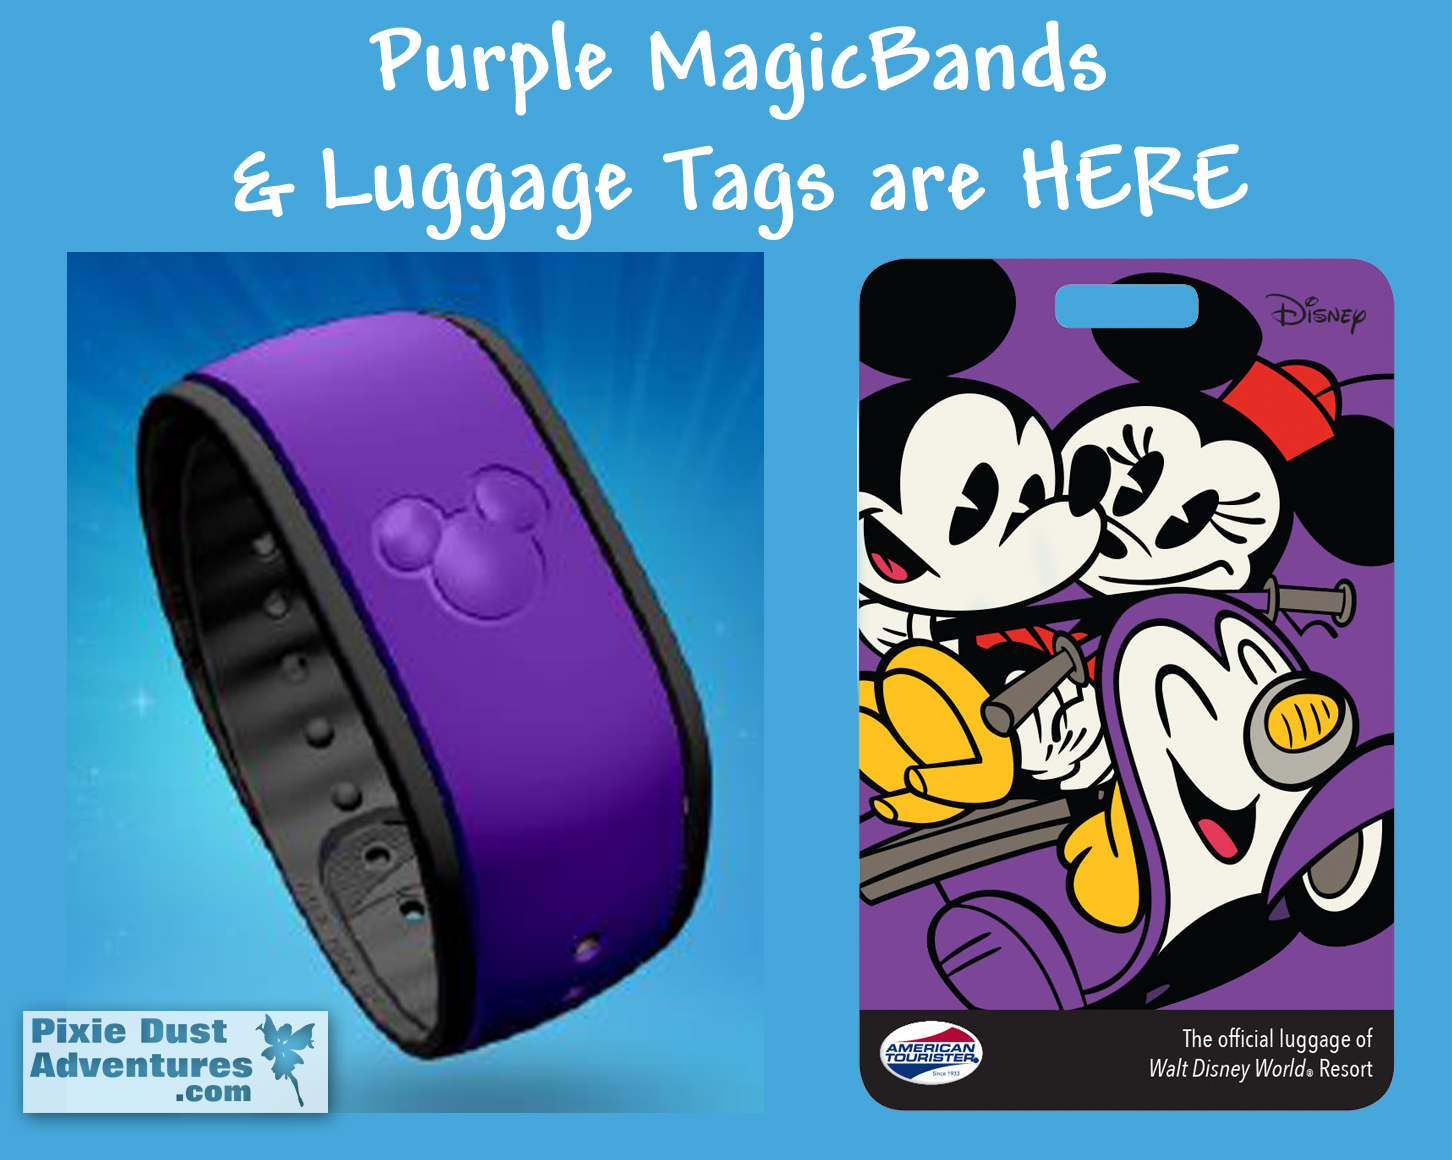 Purple_MagicBands_Luggage_Tags-2016